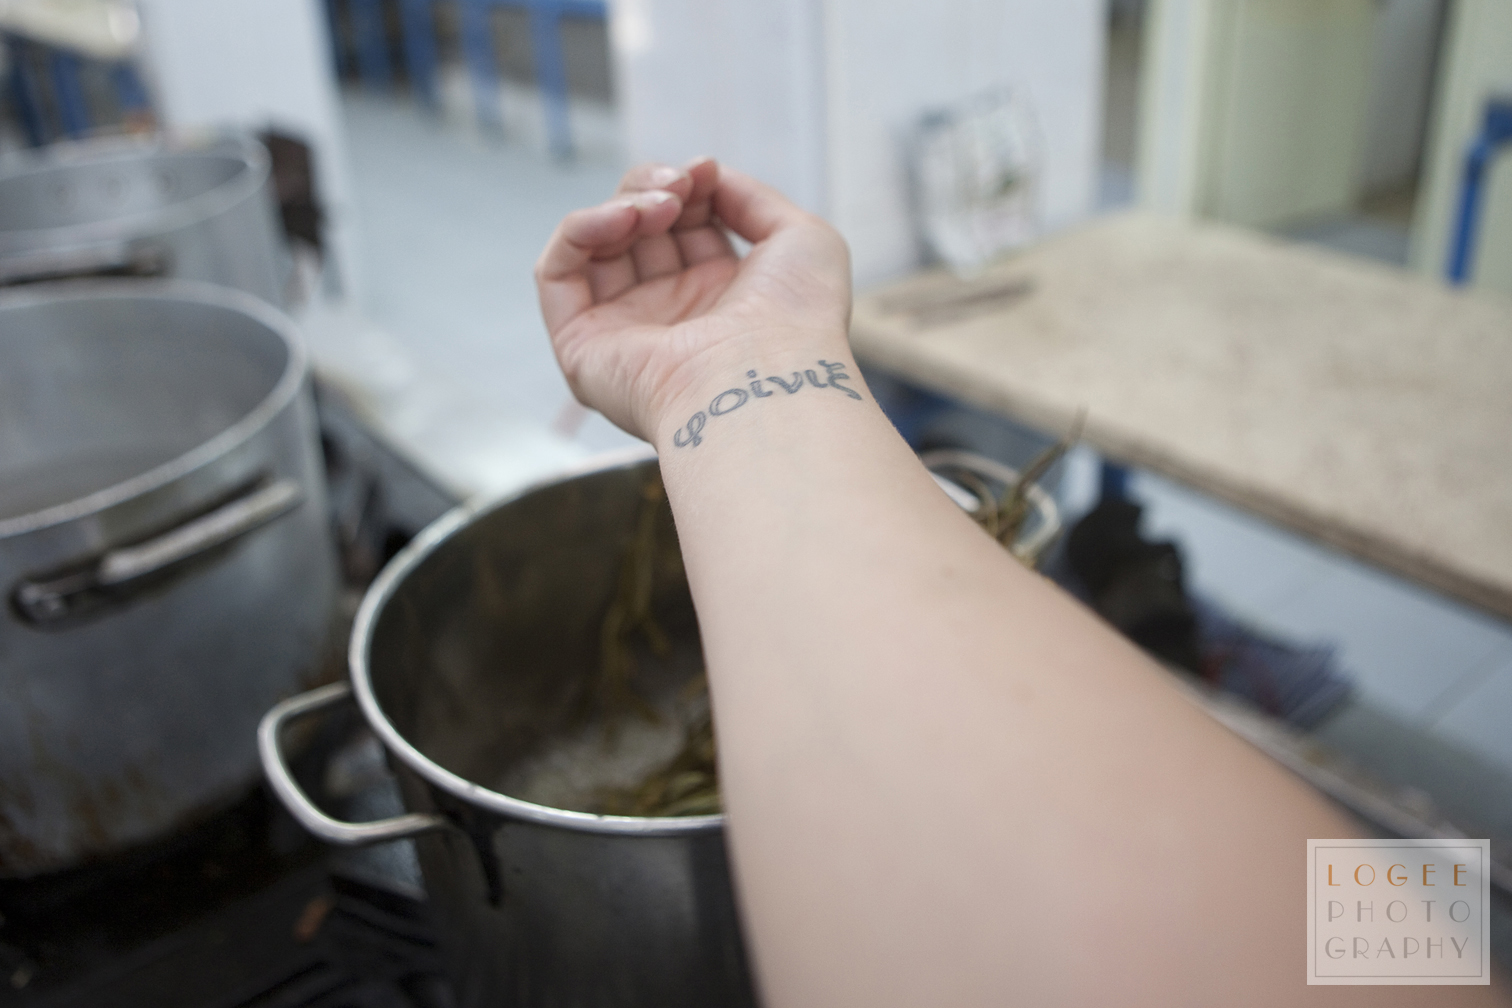 Holding my wrist in the steam coming off the boiling pot.